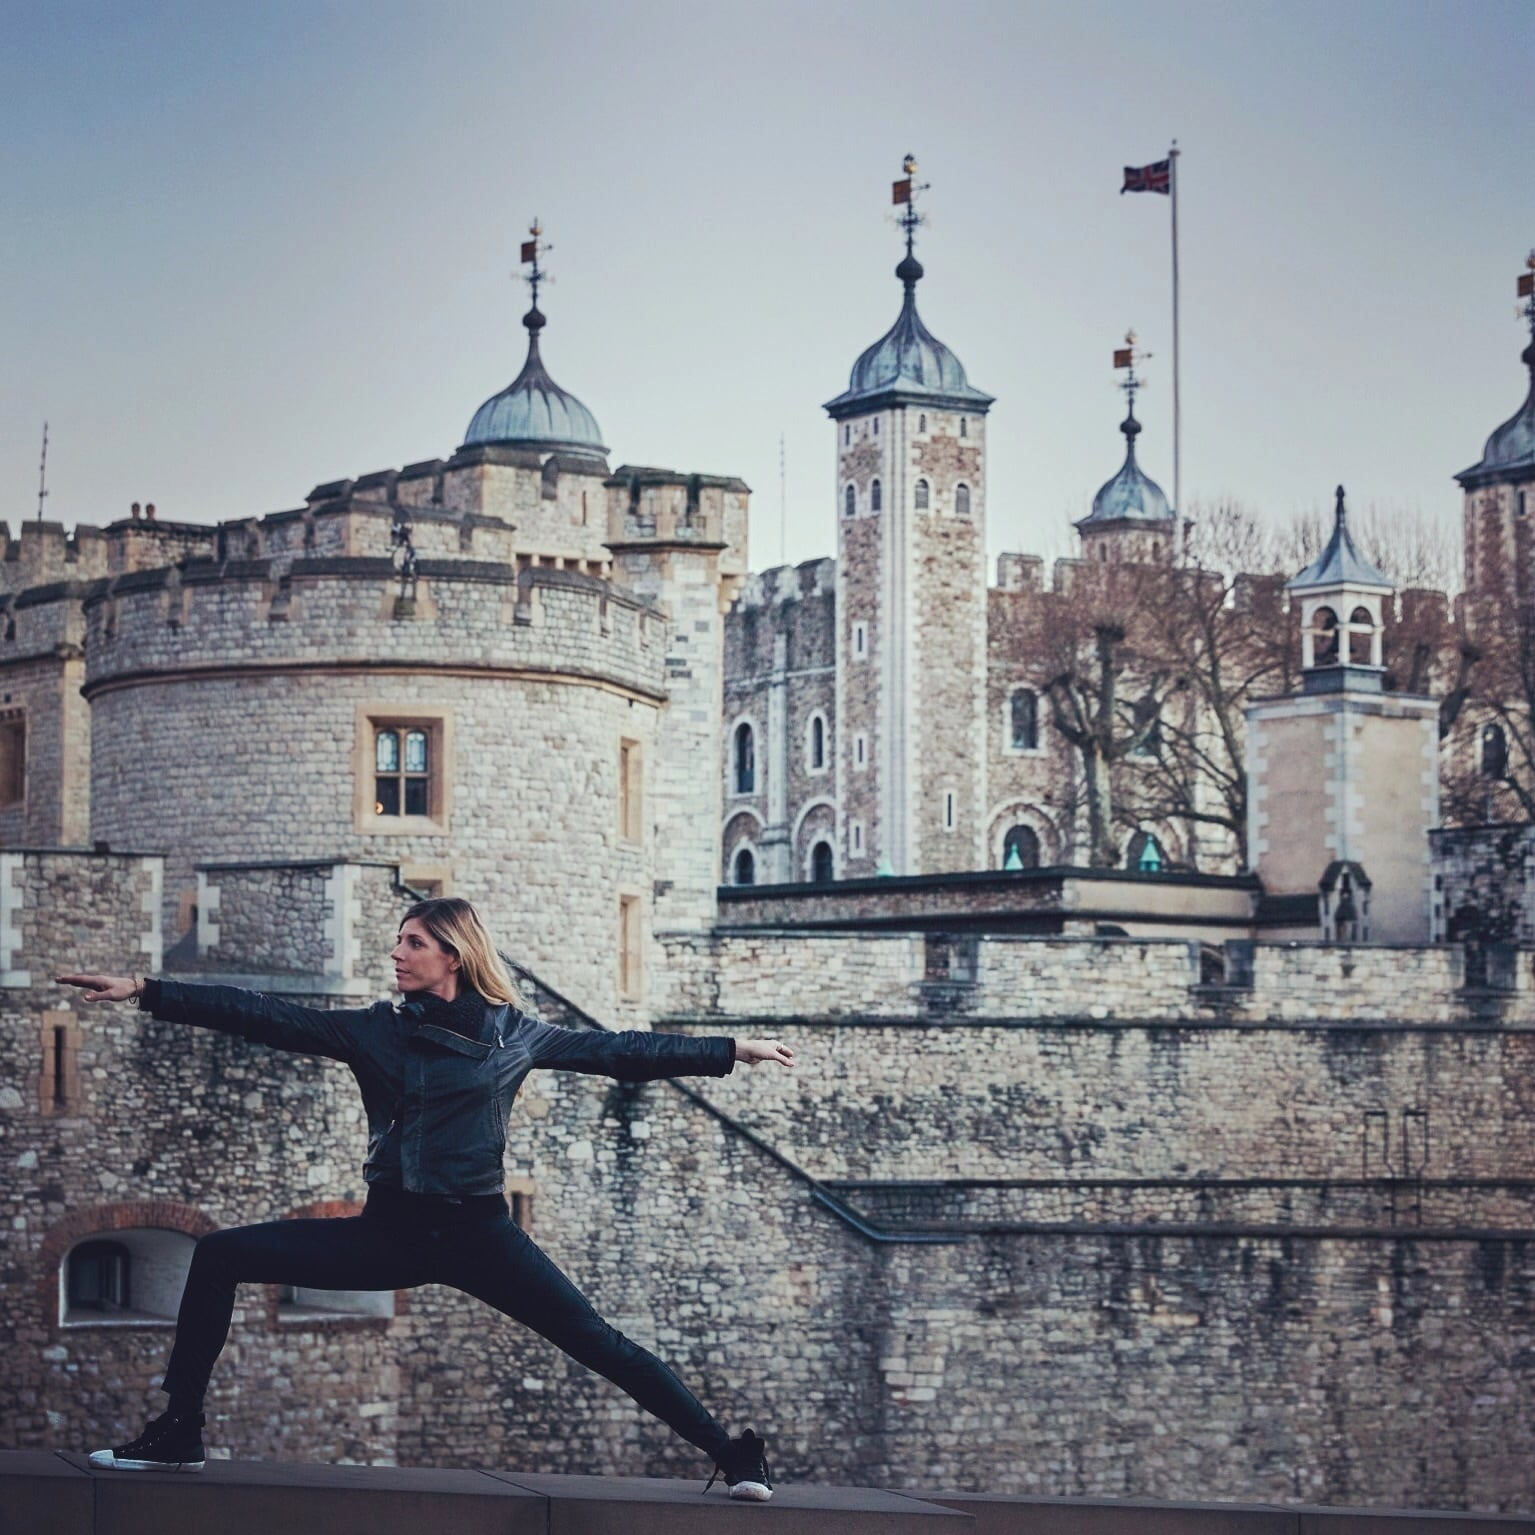 Photo by Erik Almas - Tower of London